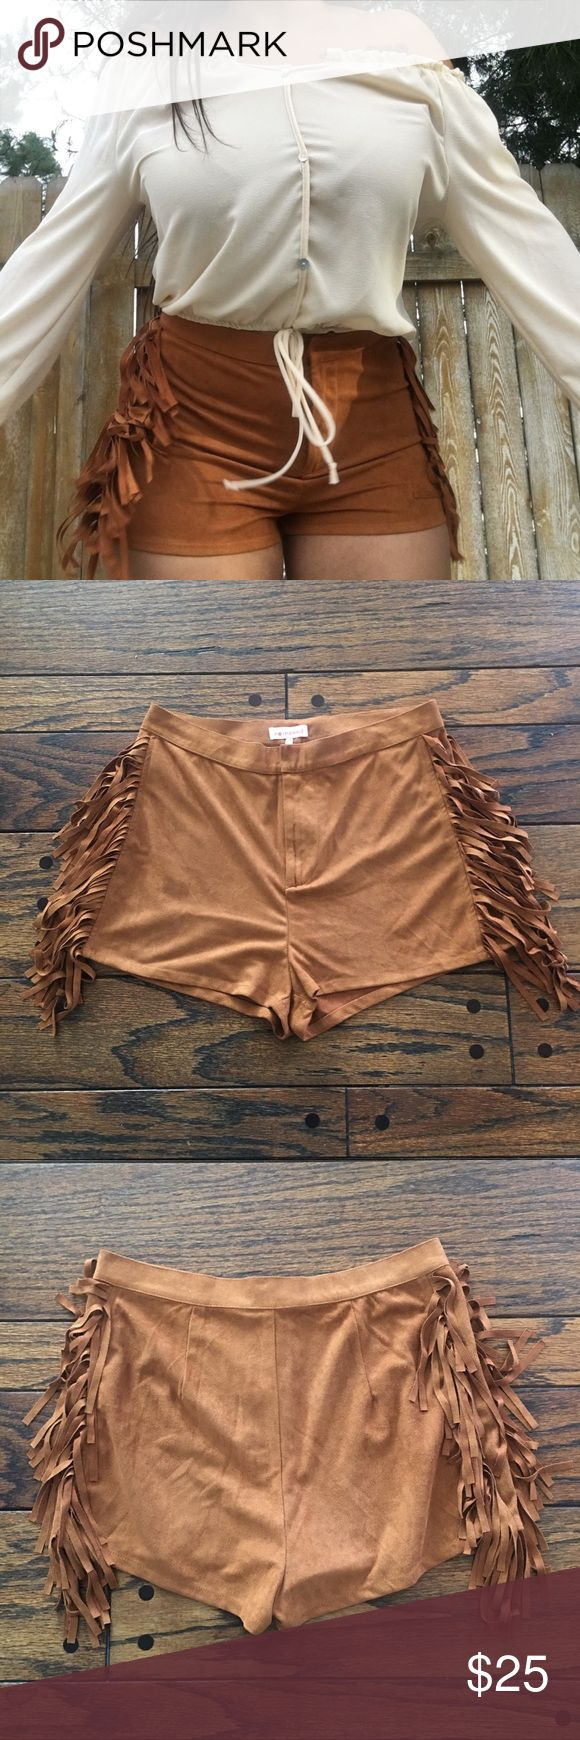 Brown suede fringe shorts The perfect pair of shorts for music festivals or anyone into 70s vibes!! The suede is really soft and they are in almost perfect condition. Never worn outside the house! Only worn for pictures!! I bought them from Sorella Boutique 3 yrs ago. These look super cute with flowy blouses or band ts. Could also look cute with crop too and motorcycle boots! Serious Pocahontas vibes if you pair it with a turquoise top!  Pls send offers 🌹 Shorts